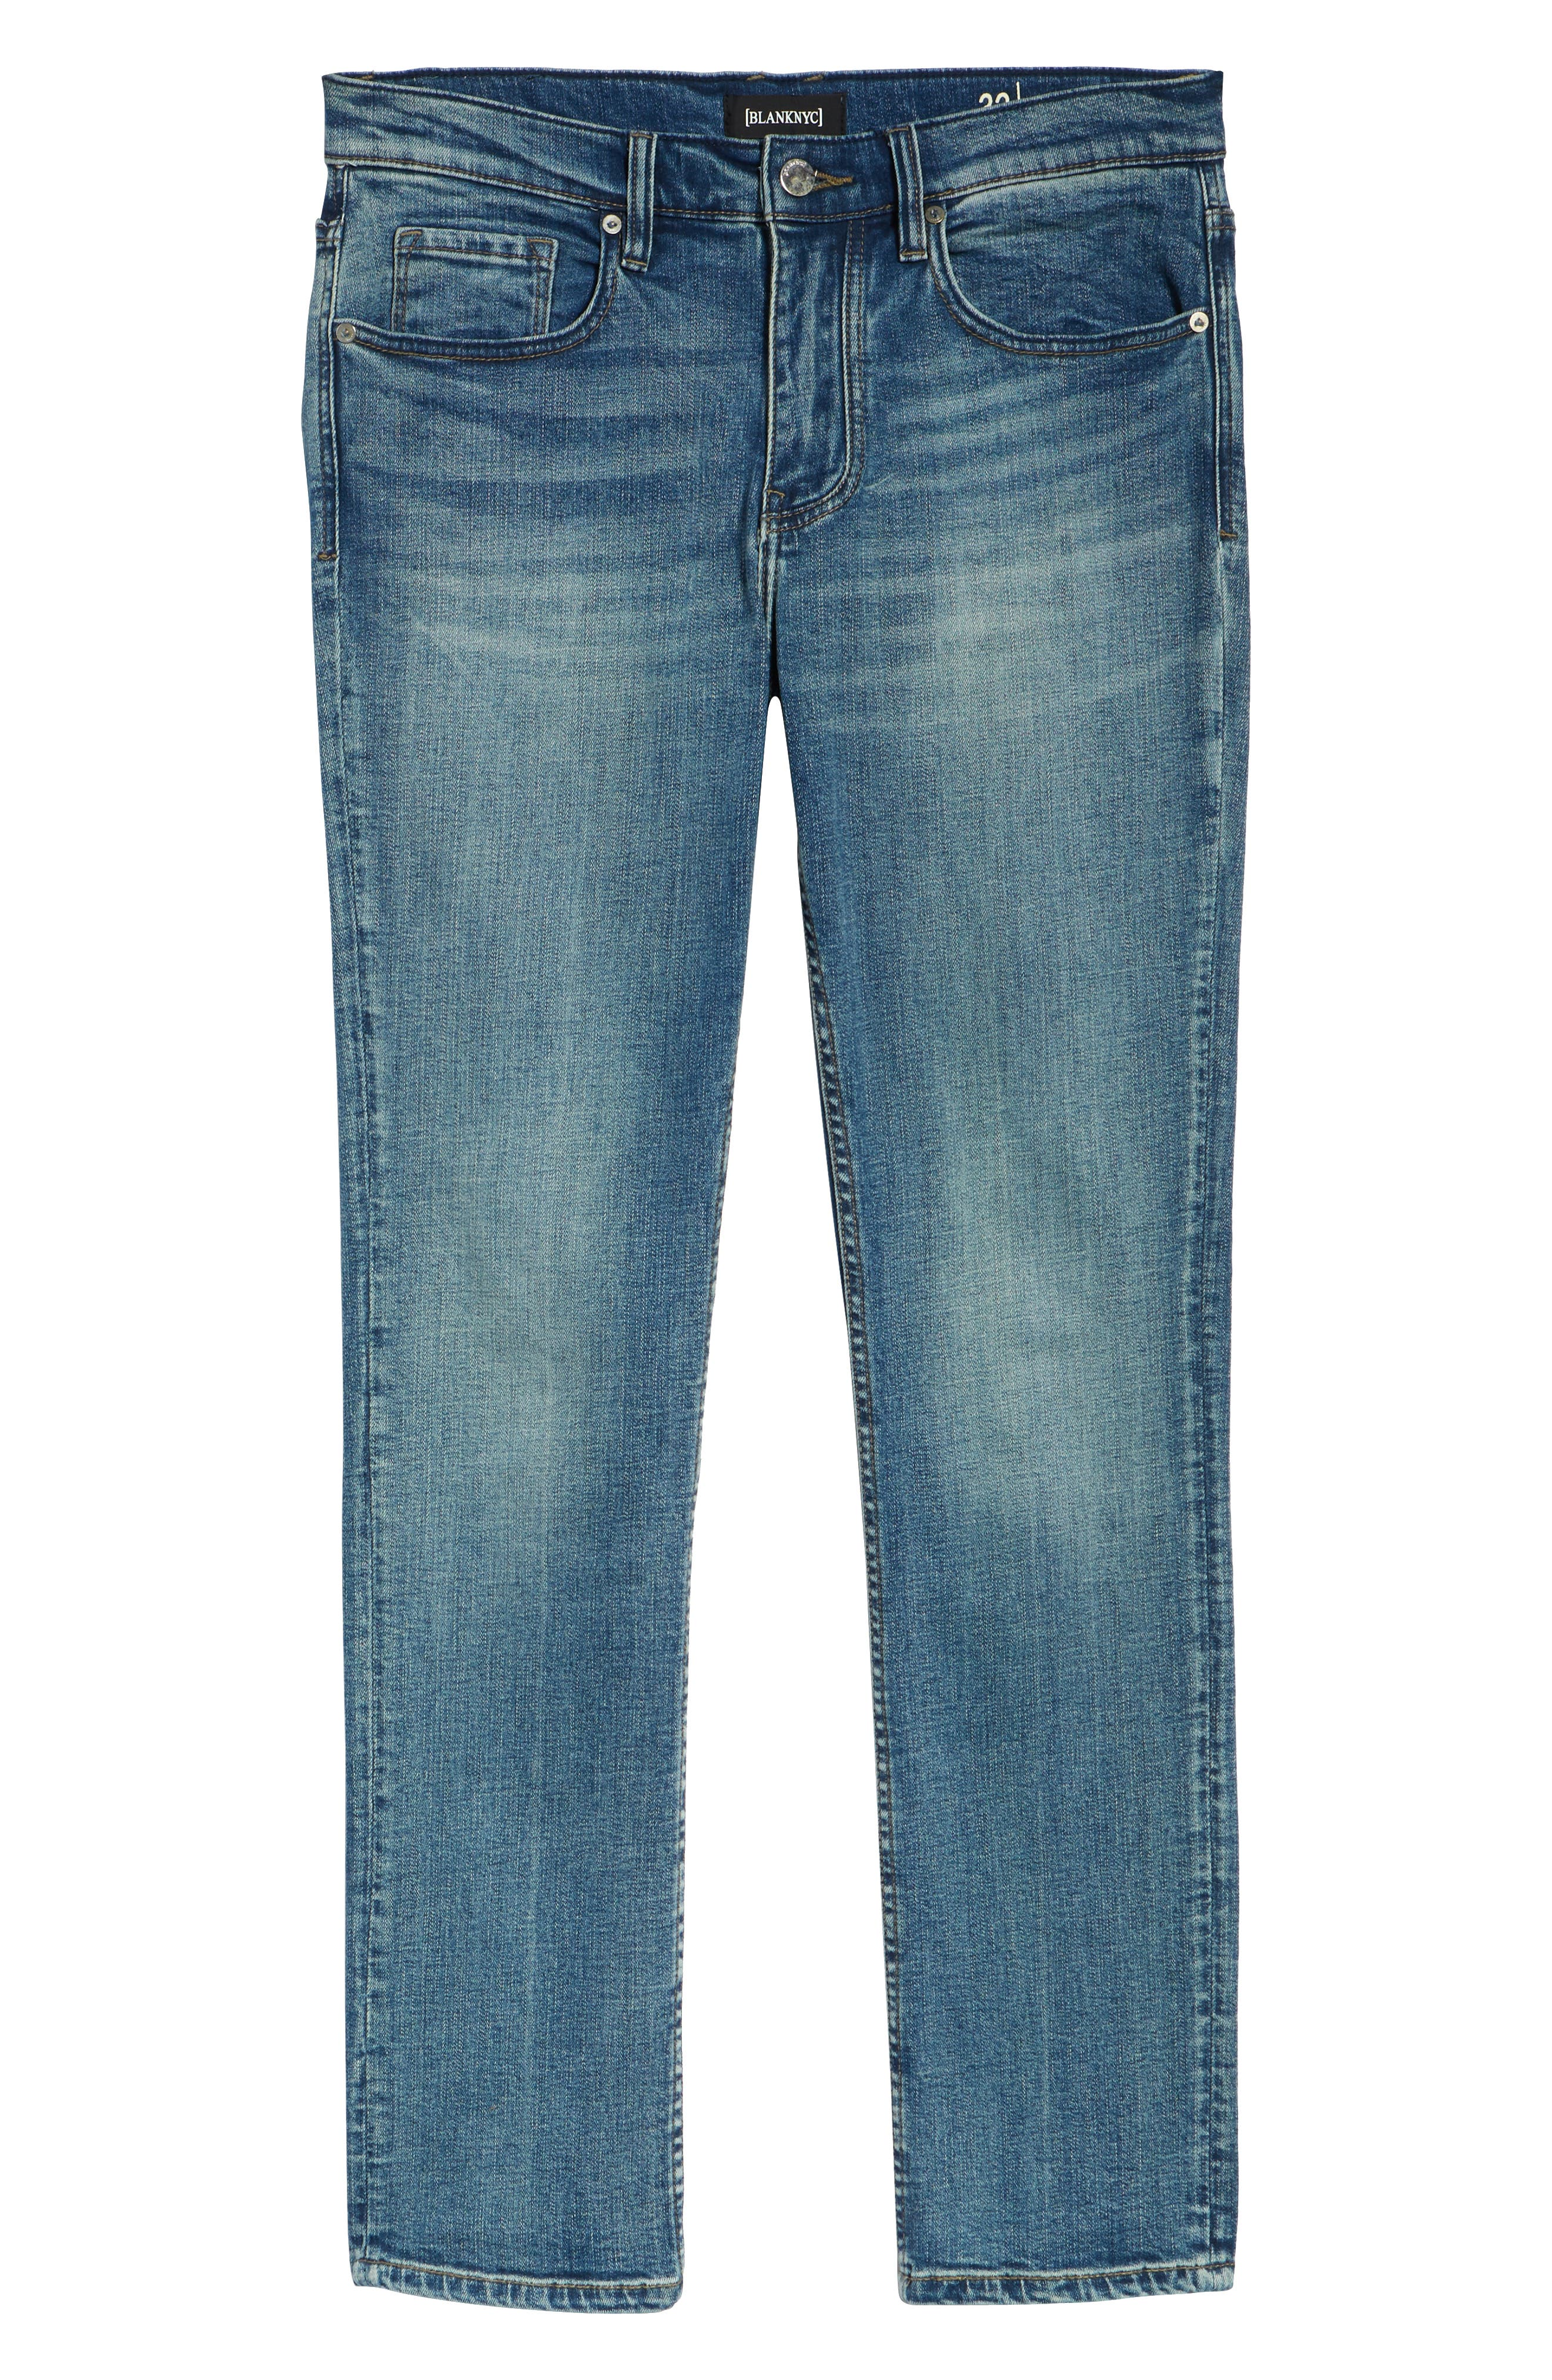 Wooster Selvedge Slim Fit Jeans,                             Alternate thumbnail 6, color,                             LIGHT WORK